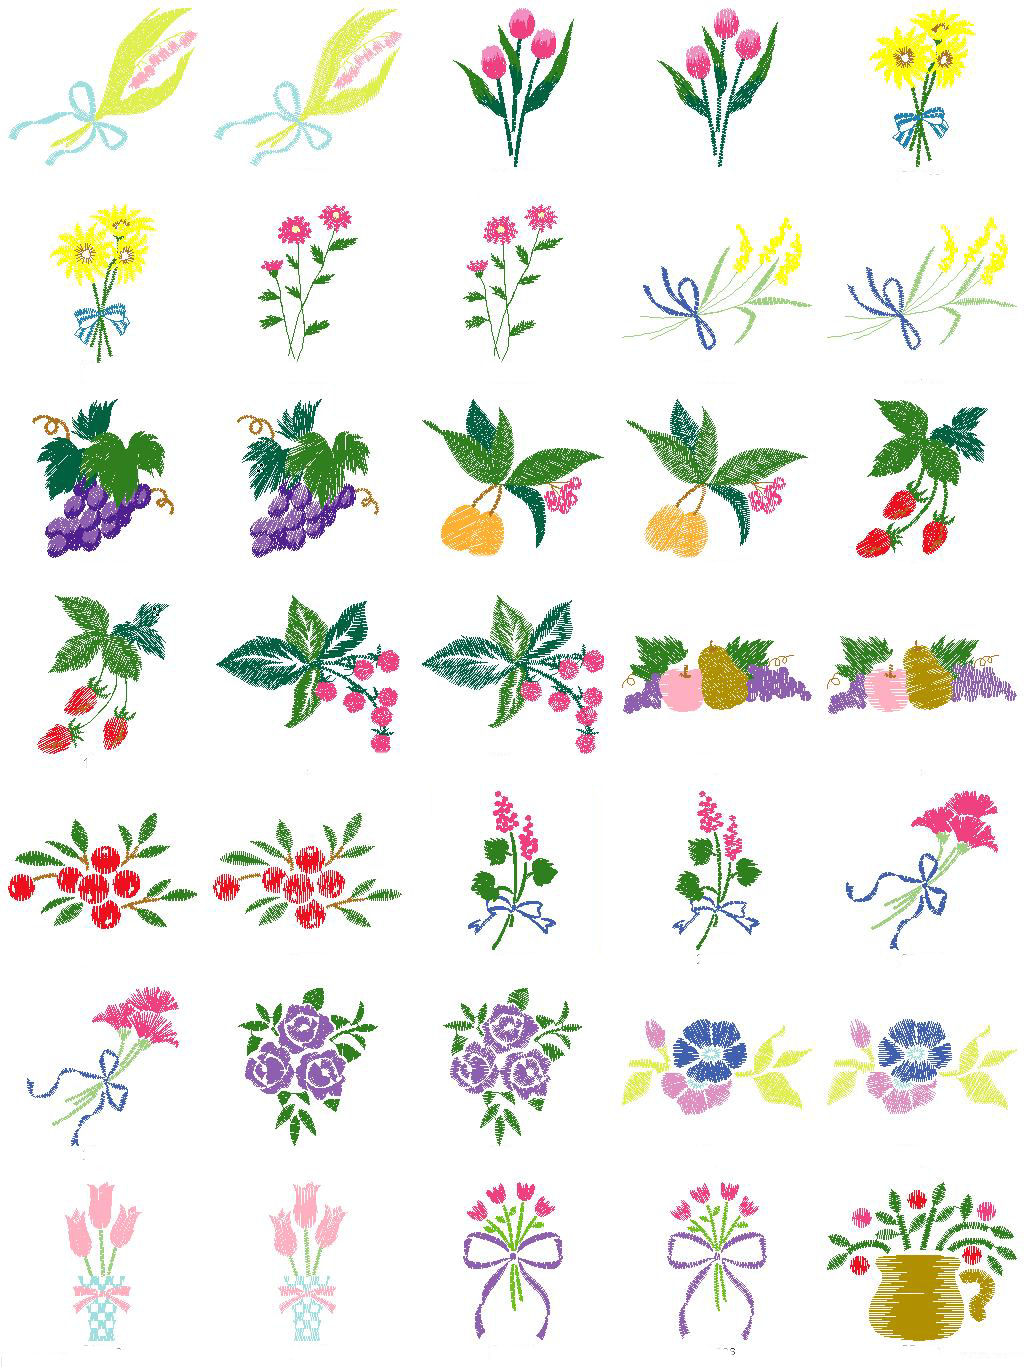 Embroidery Machine Patterns Download 13 Free Embroidery Designs Brother Machine Images Free Butterfly